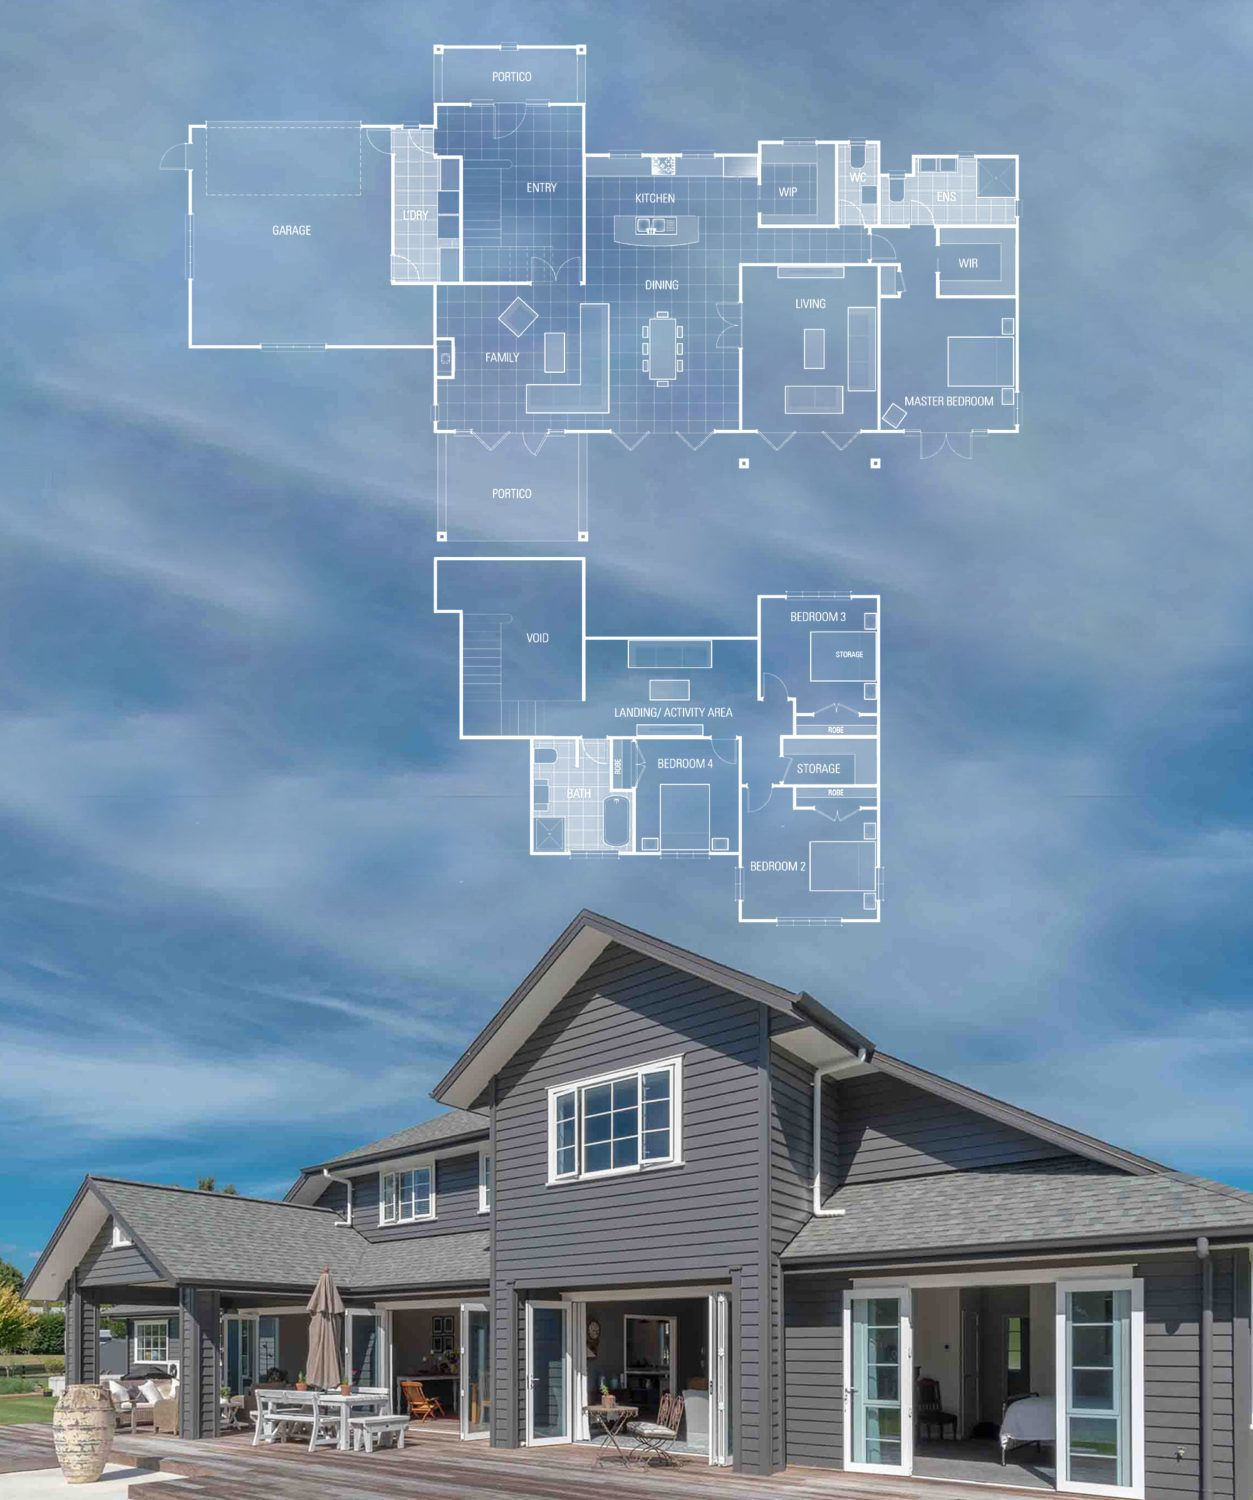 Landmark Showcase Hawea Ready To Build Plan New Zealand Architecture House Layout Plans Architecture Plan